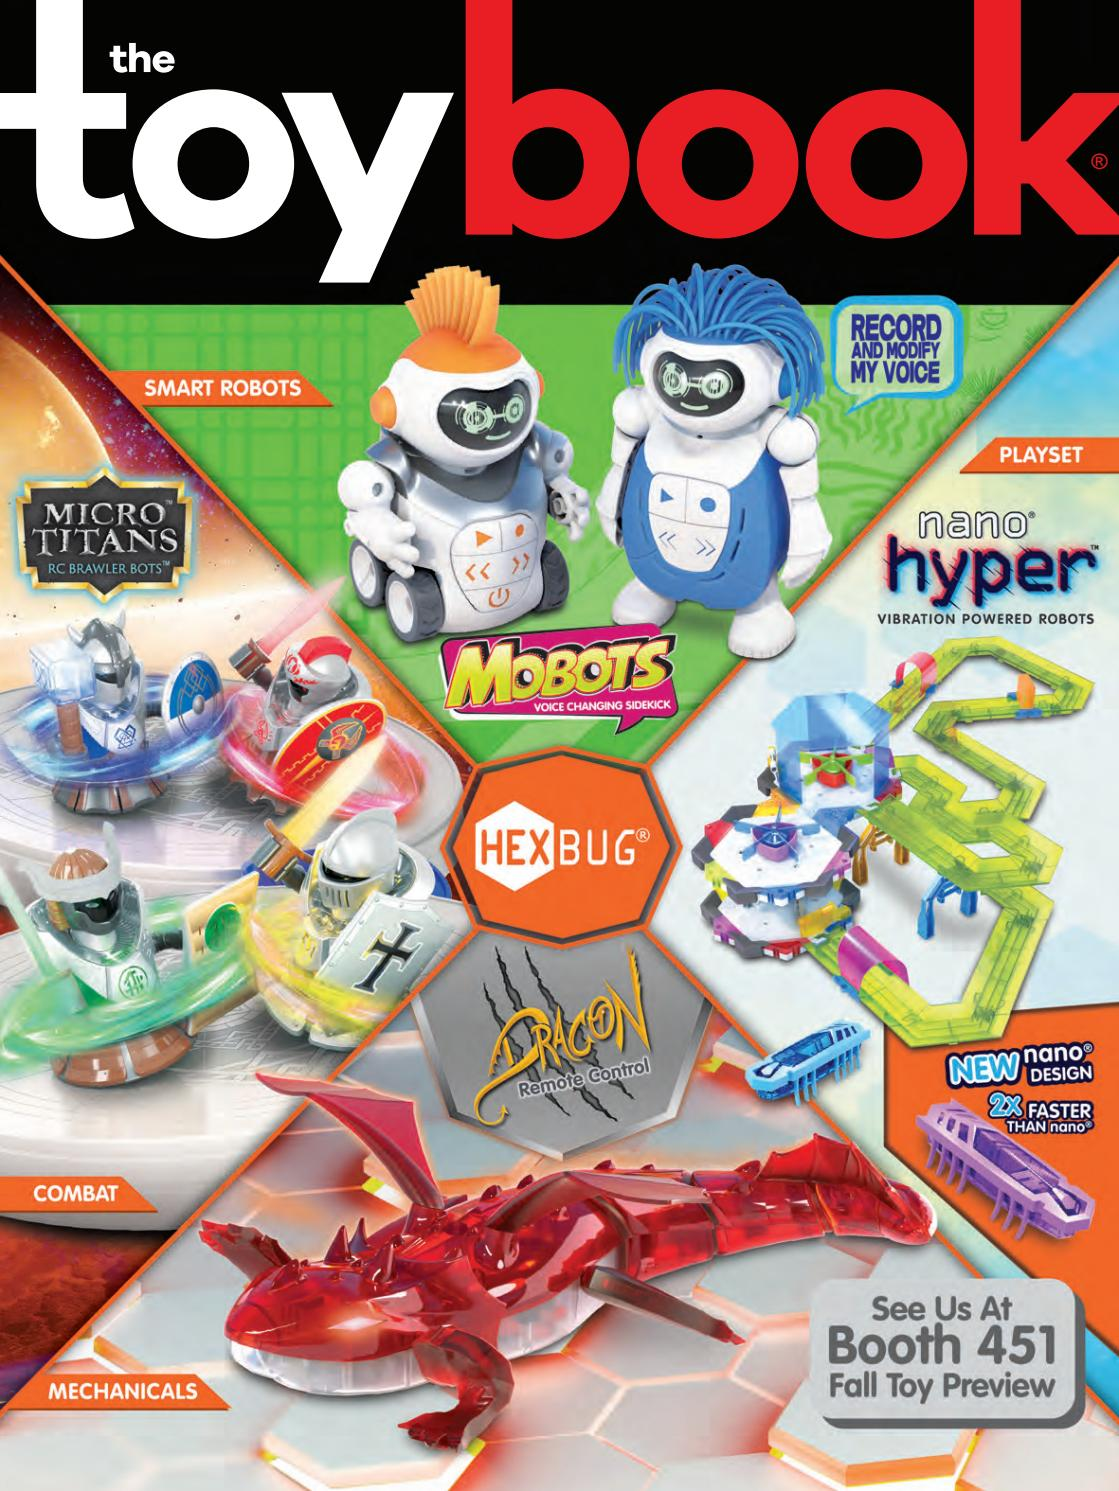 Creeper Hose Roblox September October 2019 By The Toy Book Issuu